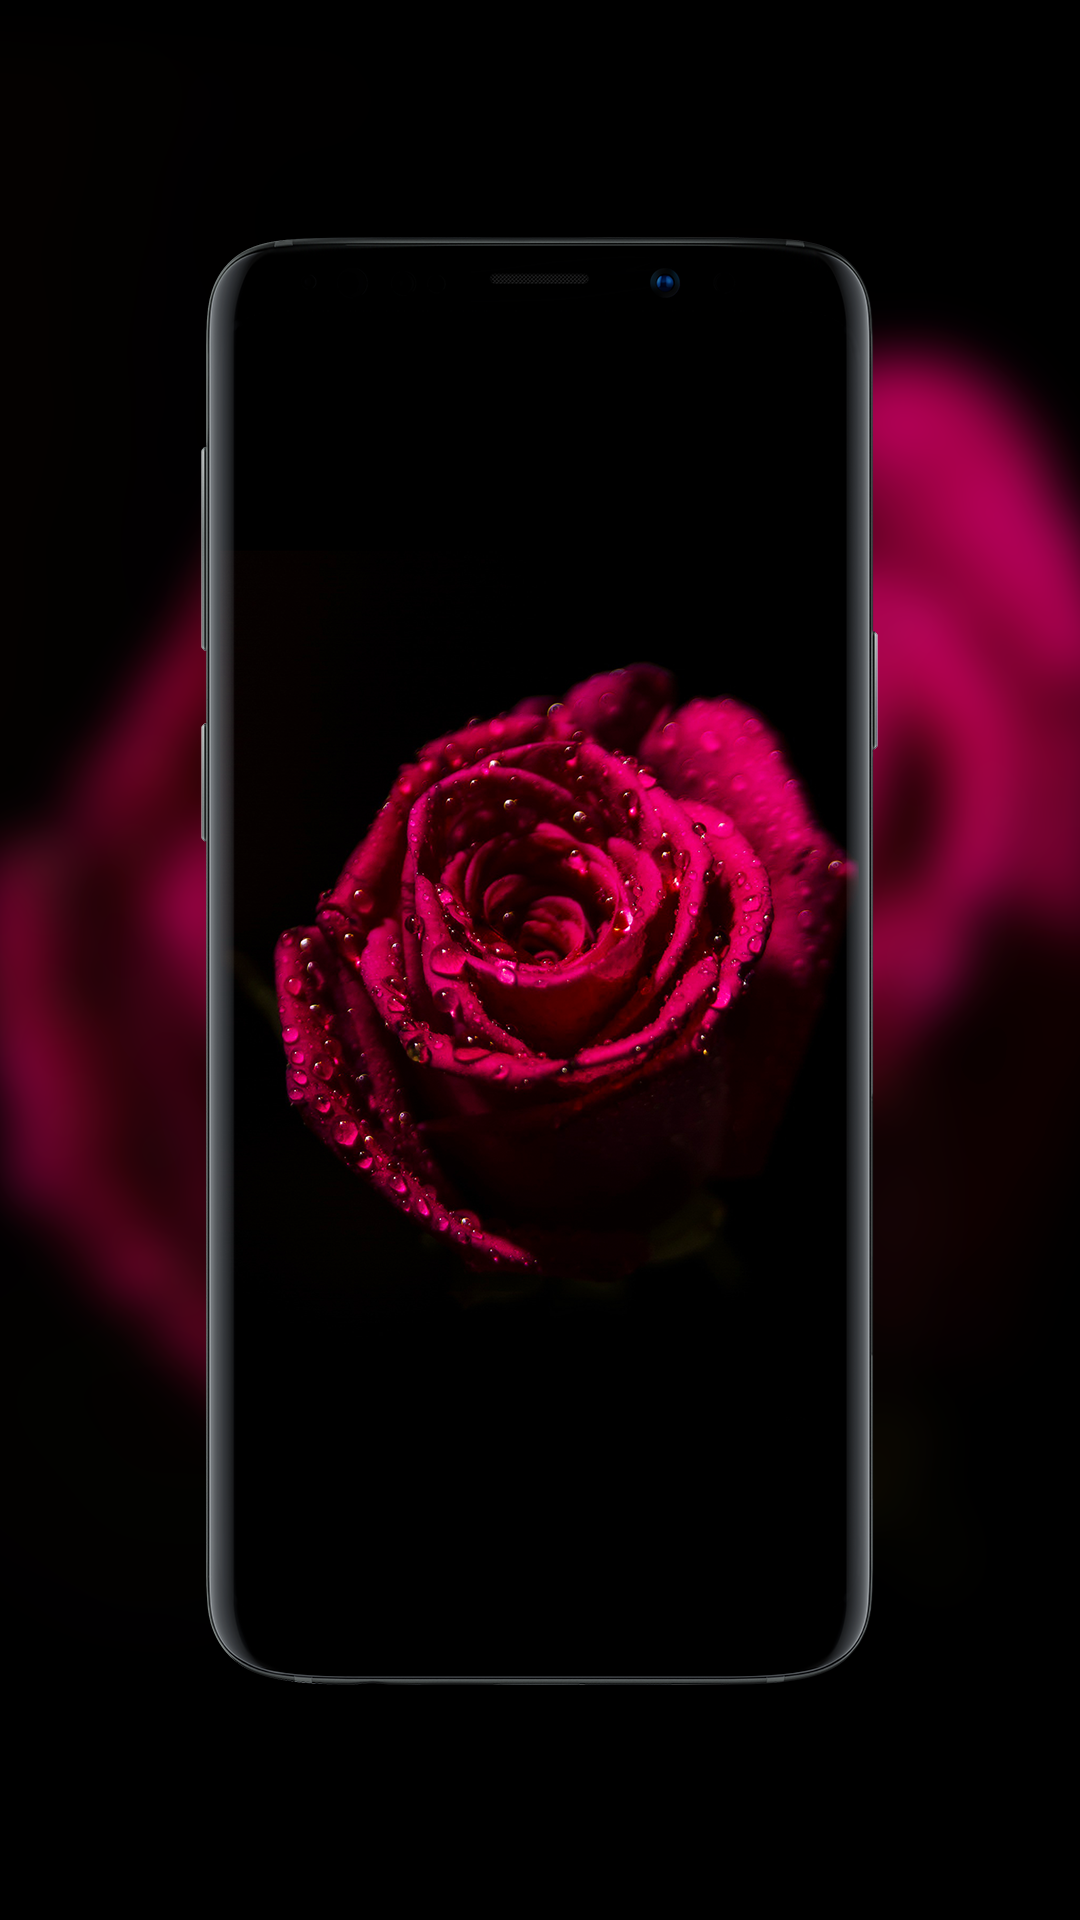 Black Wallpapers 4k Dark Amoled Backgrounds Apk 3024